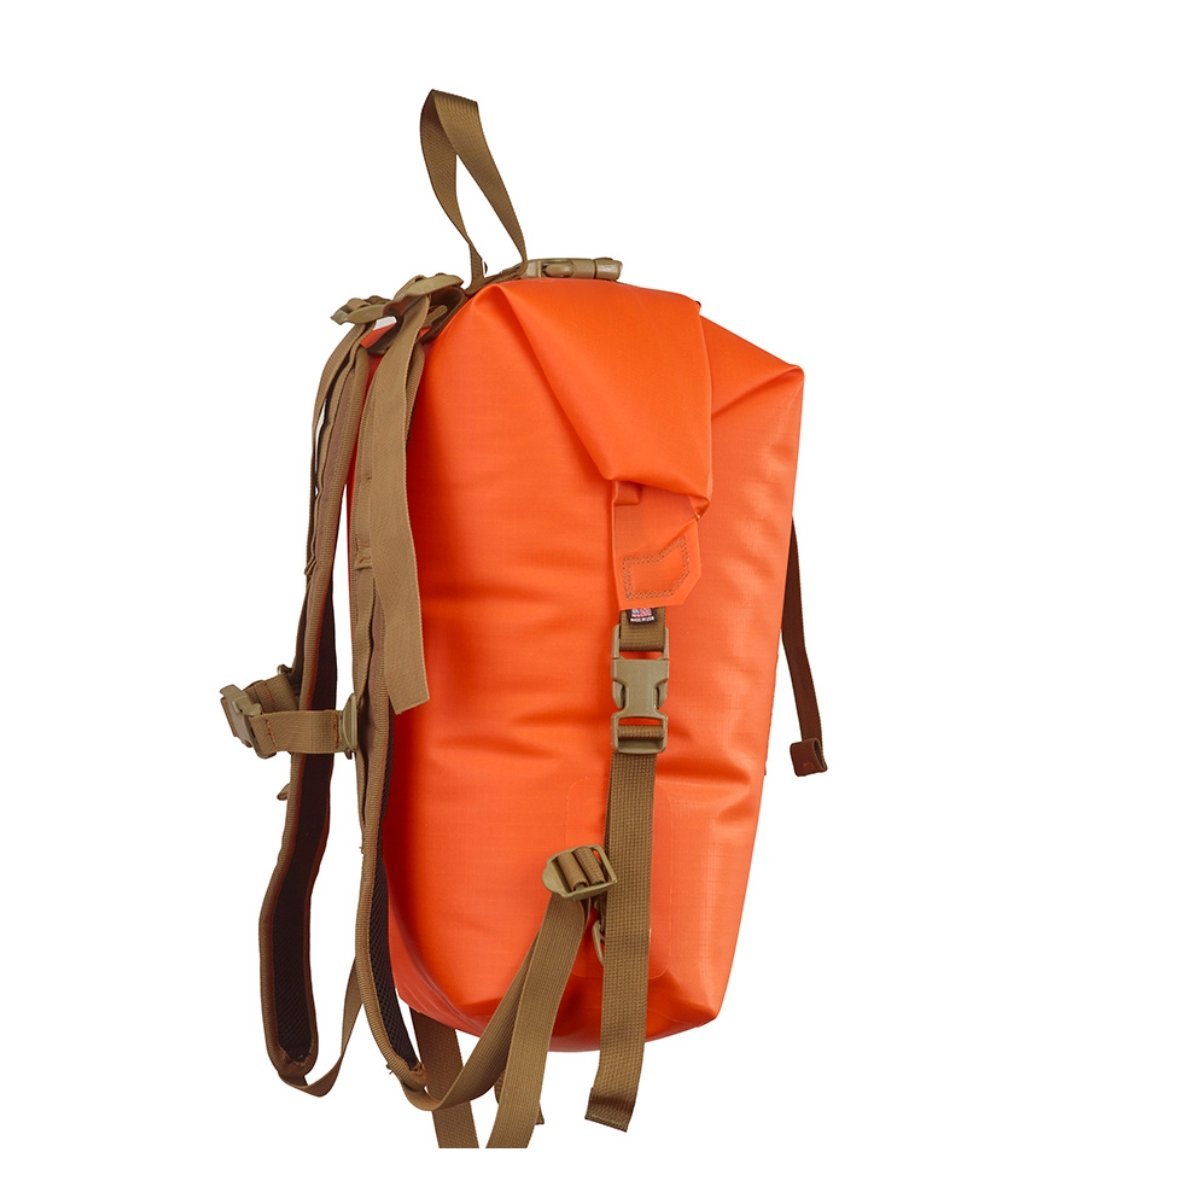 Big Creek backpack - 20 Litres - Dry Bags